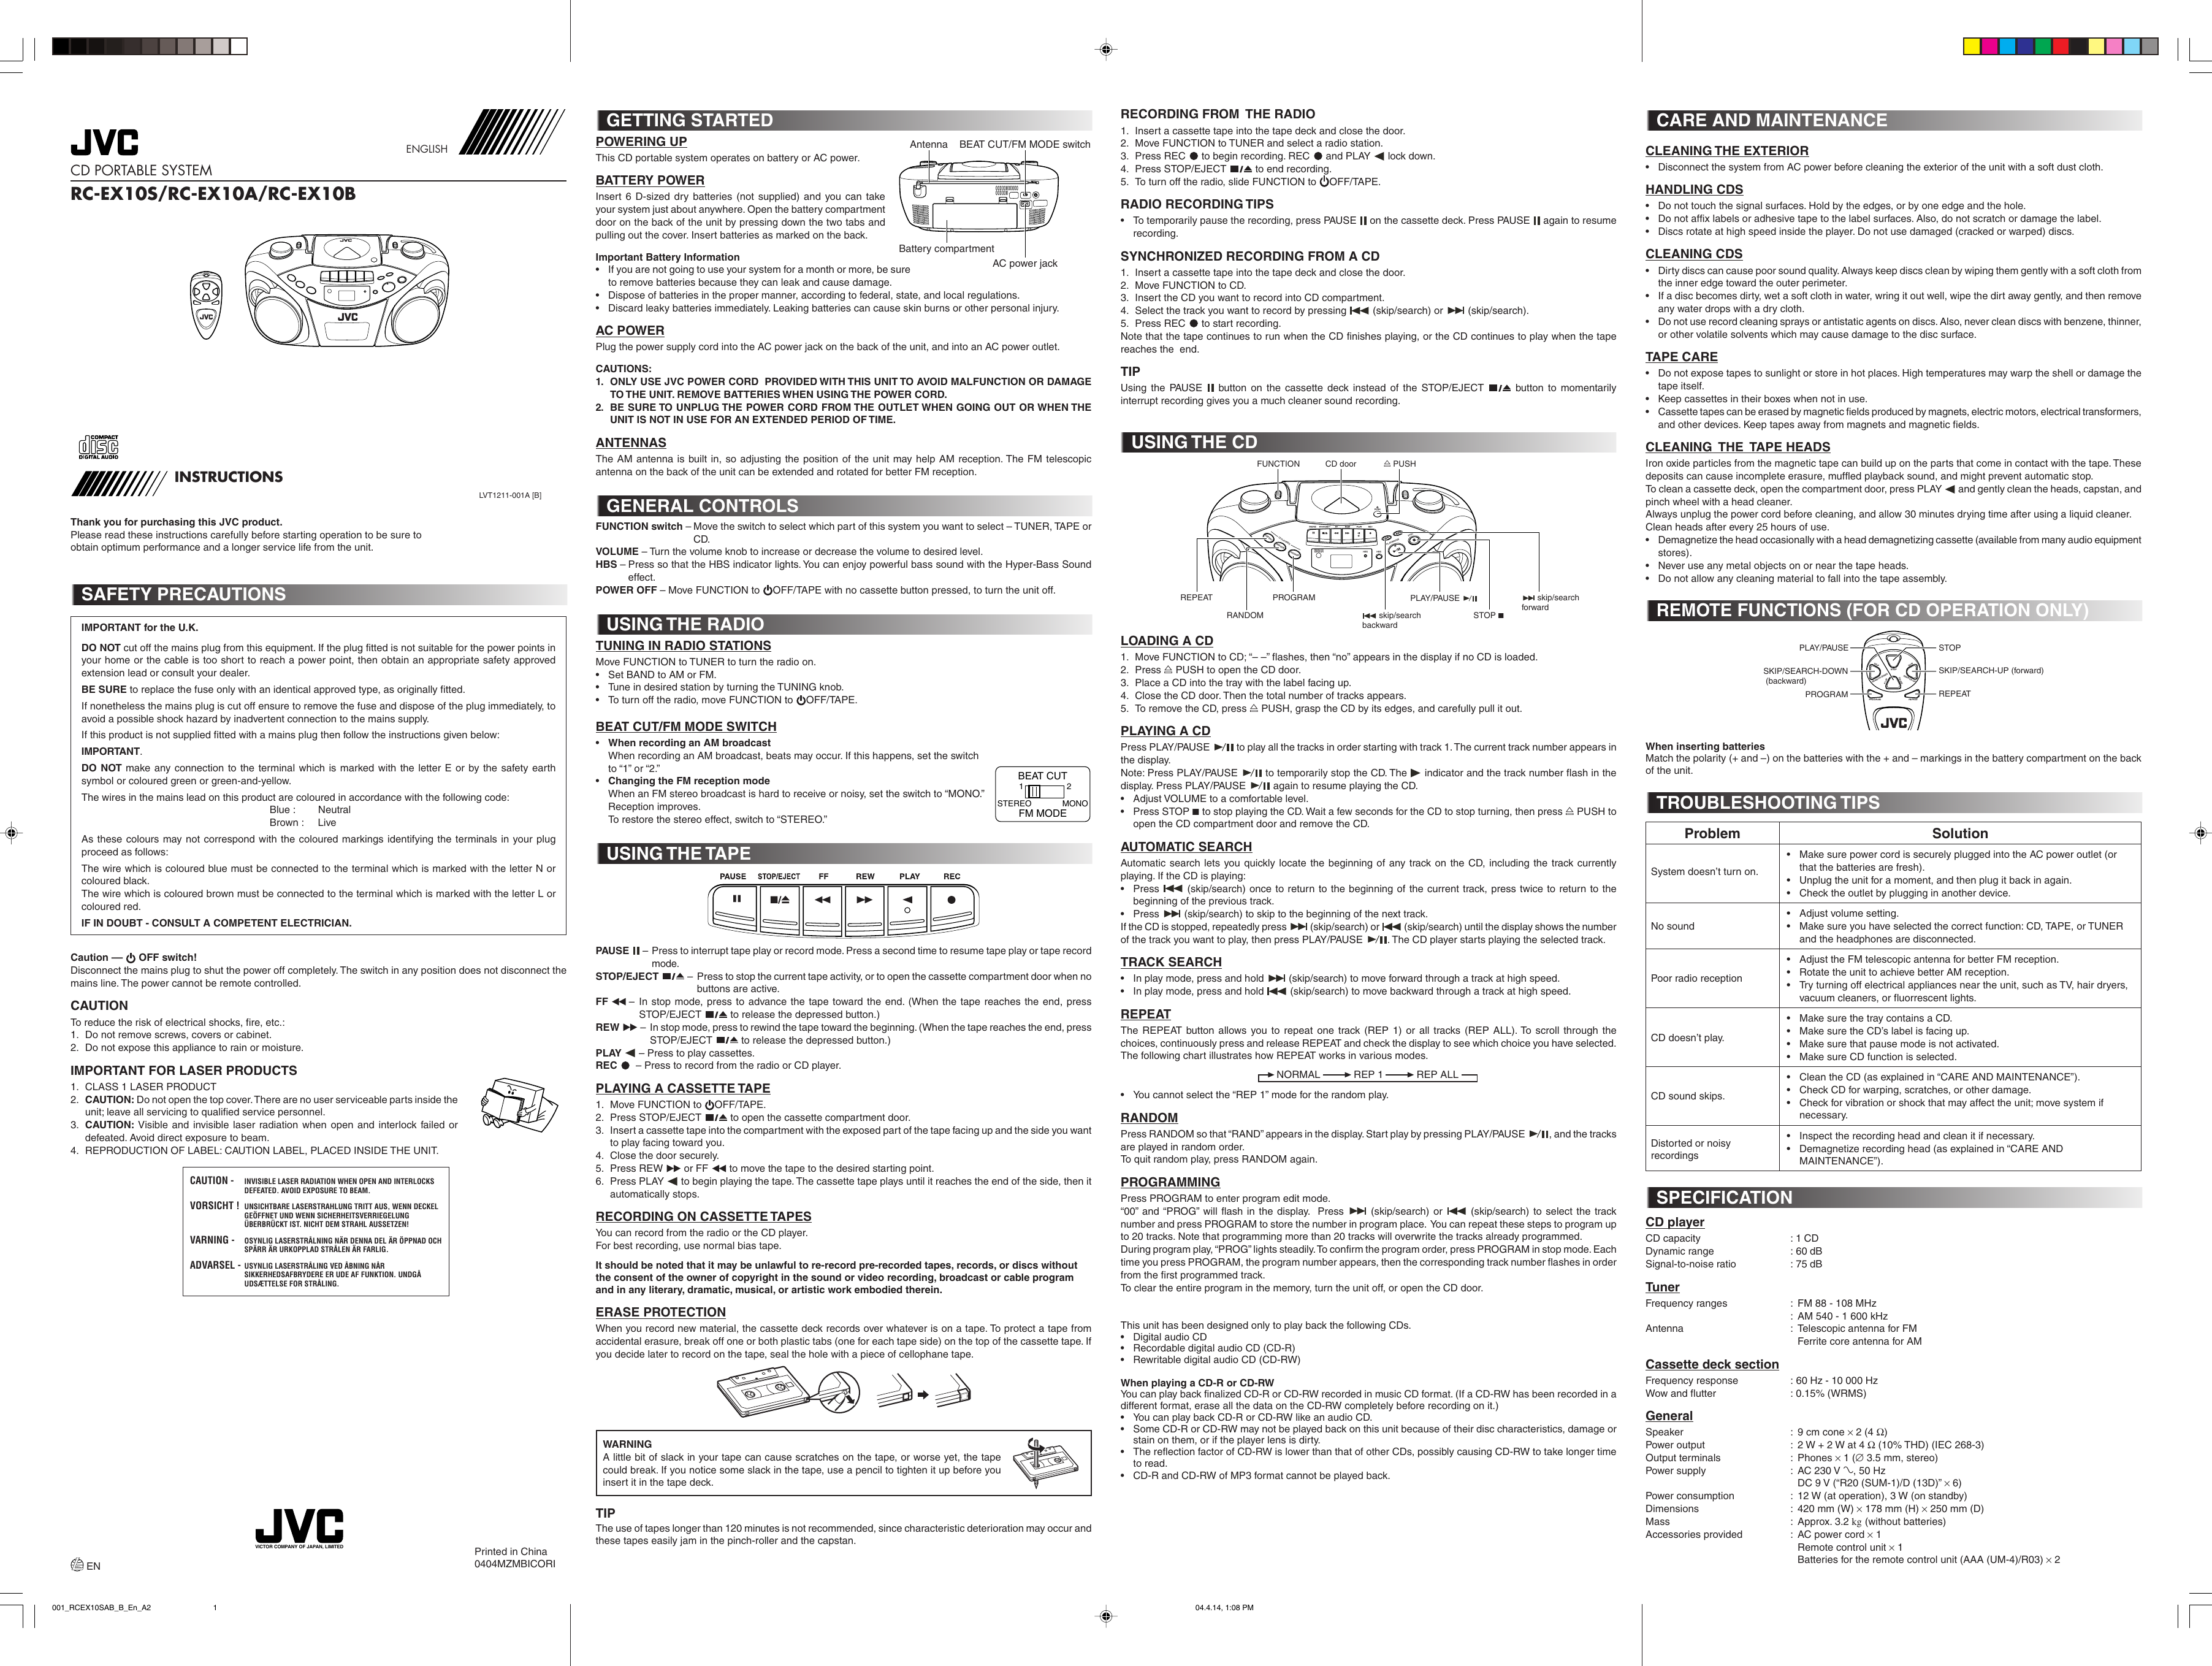 Page 1 of 3 - Jvc Jvc-Rc-Ex10A-Users-Manual-